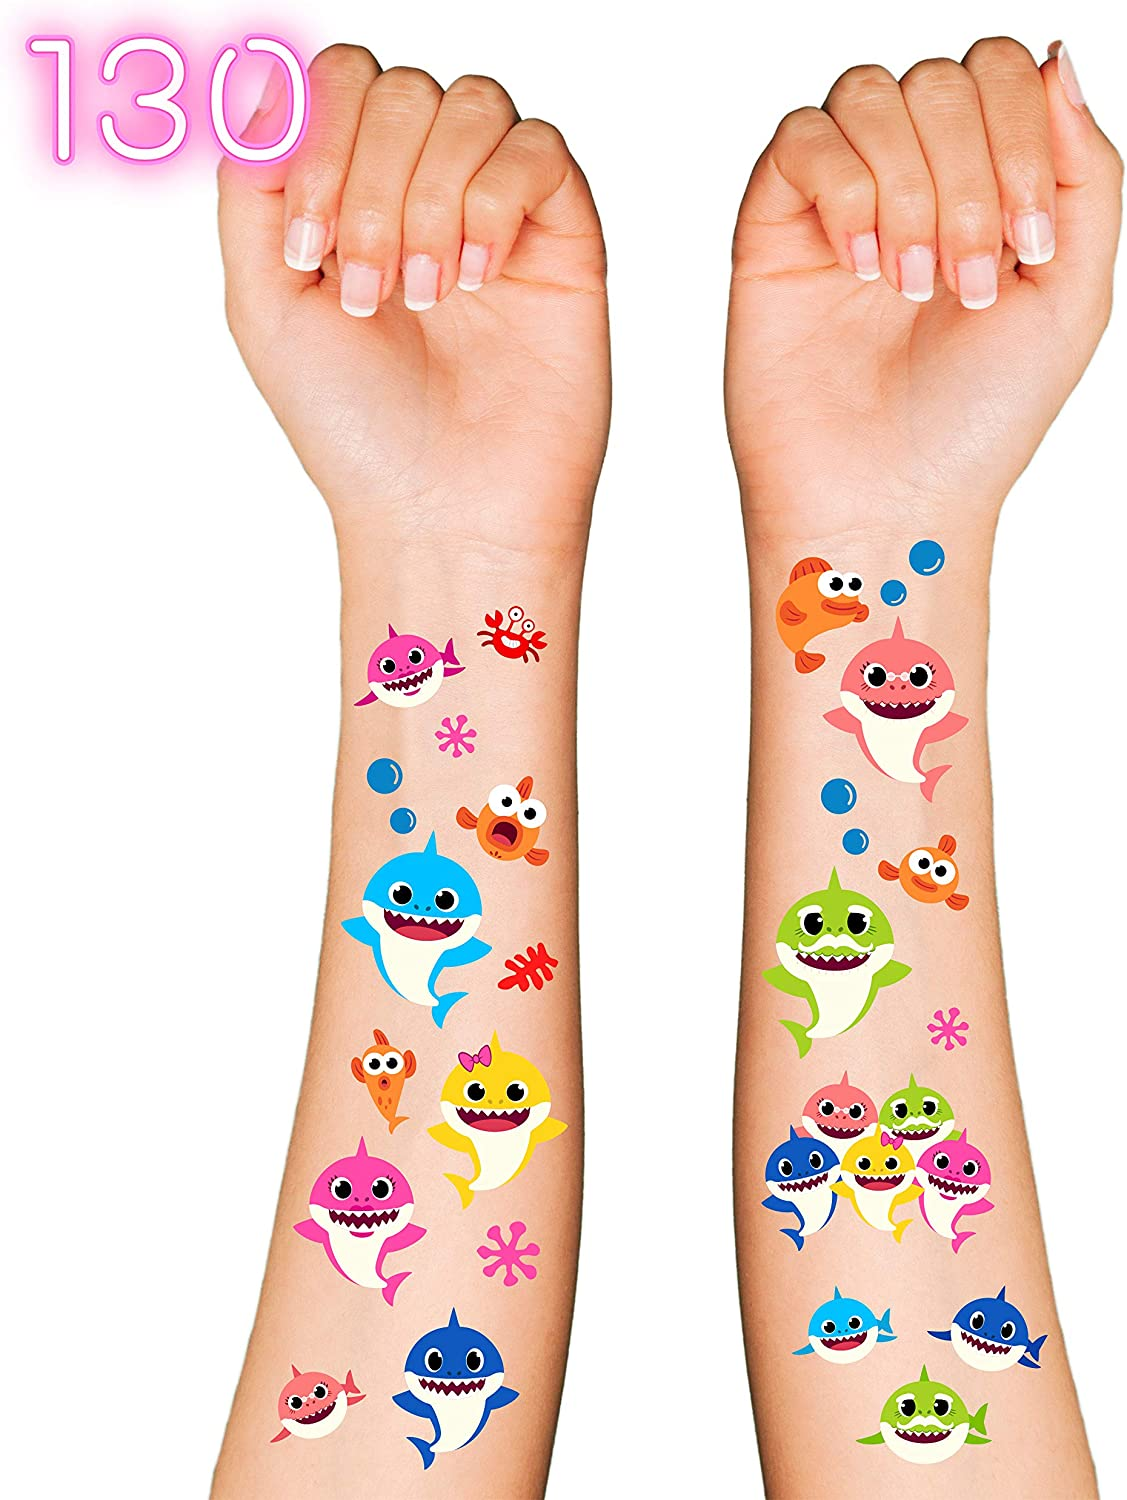 Baby Cute Shark Party Supplies Temporary Tattoos for Kids - 130 Tatoos | Shark Baby Party Favors & Birthday Party Decorations + Halloween Costume (V2)